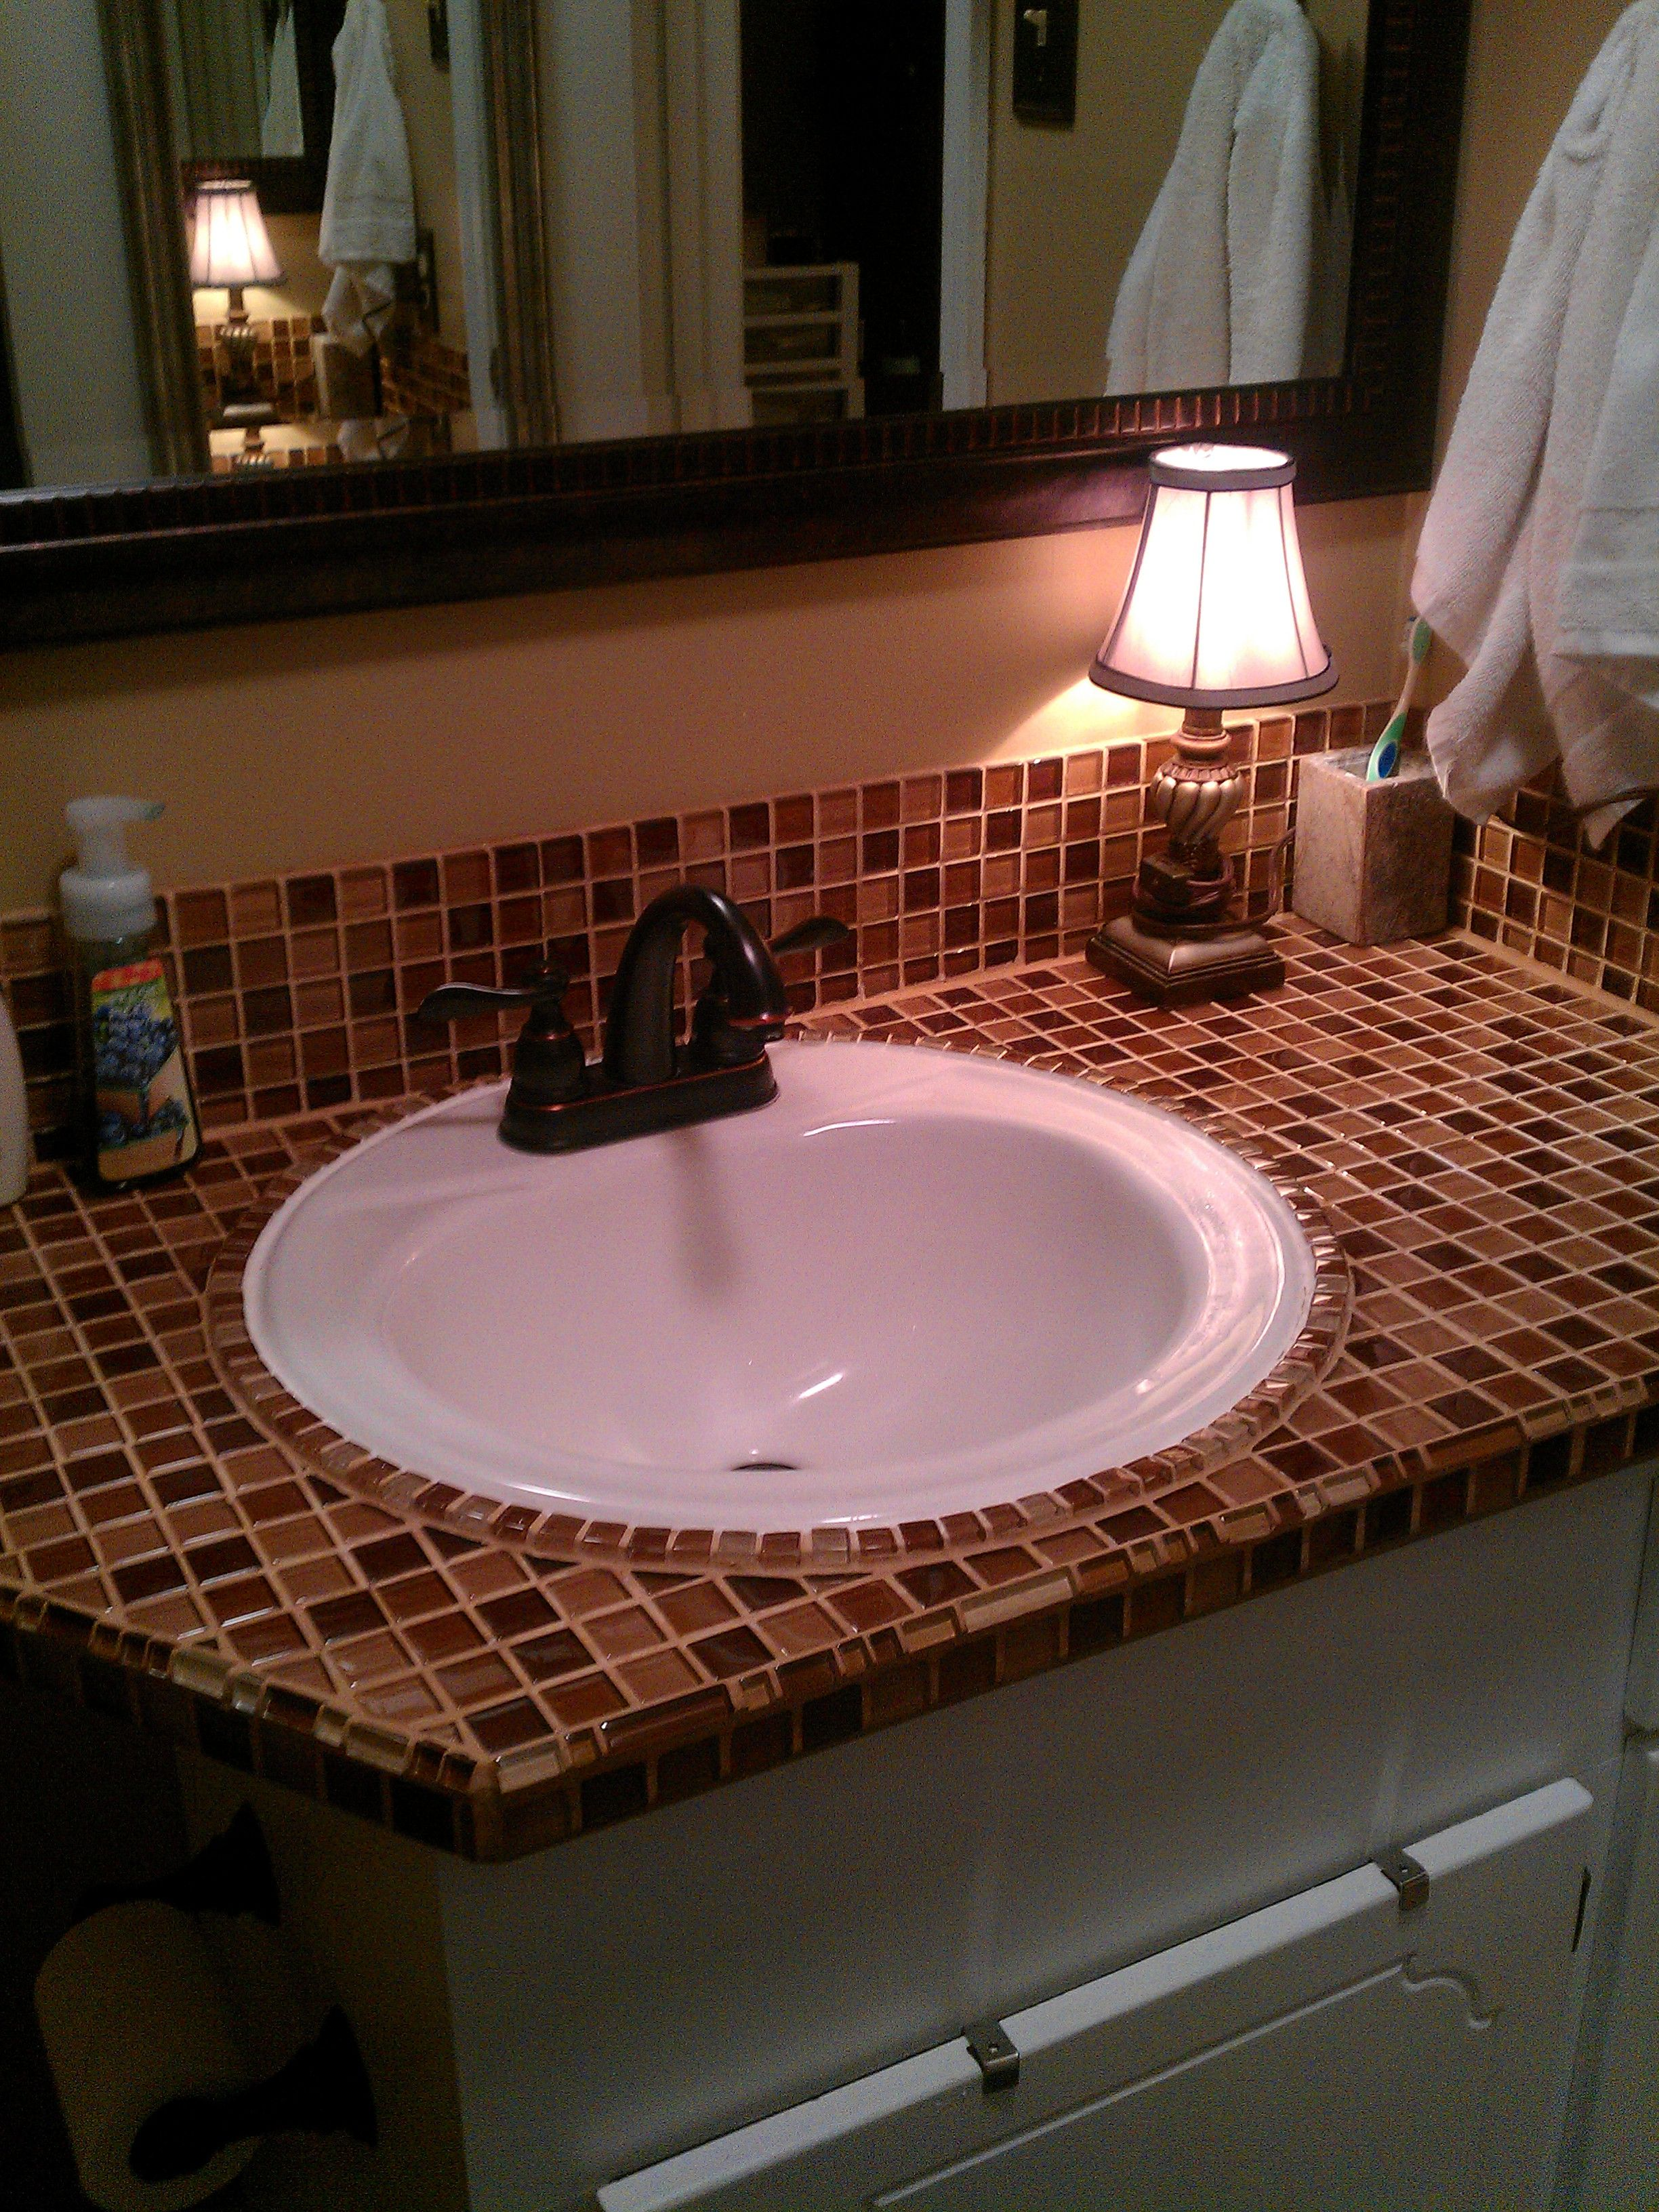 Bathroom Counter With Glass Tiles Tile Countertops Bathroom